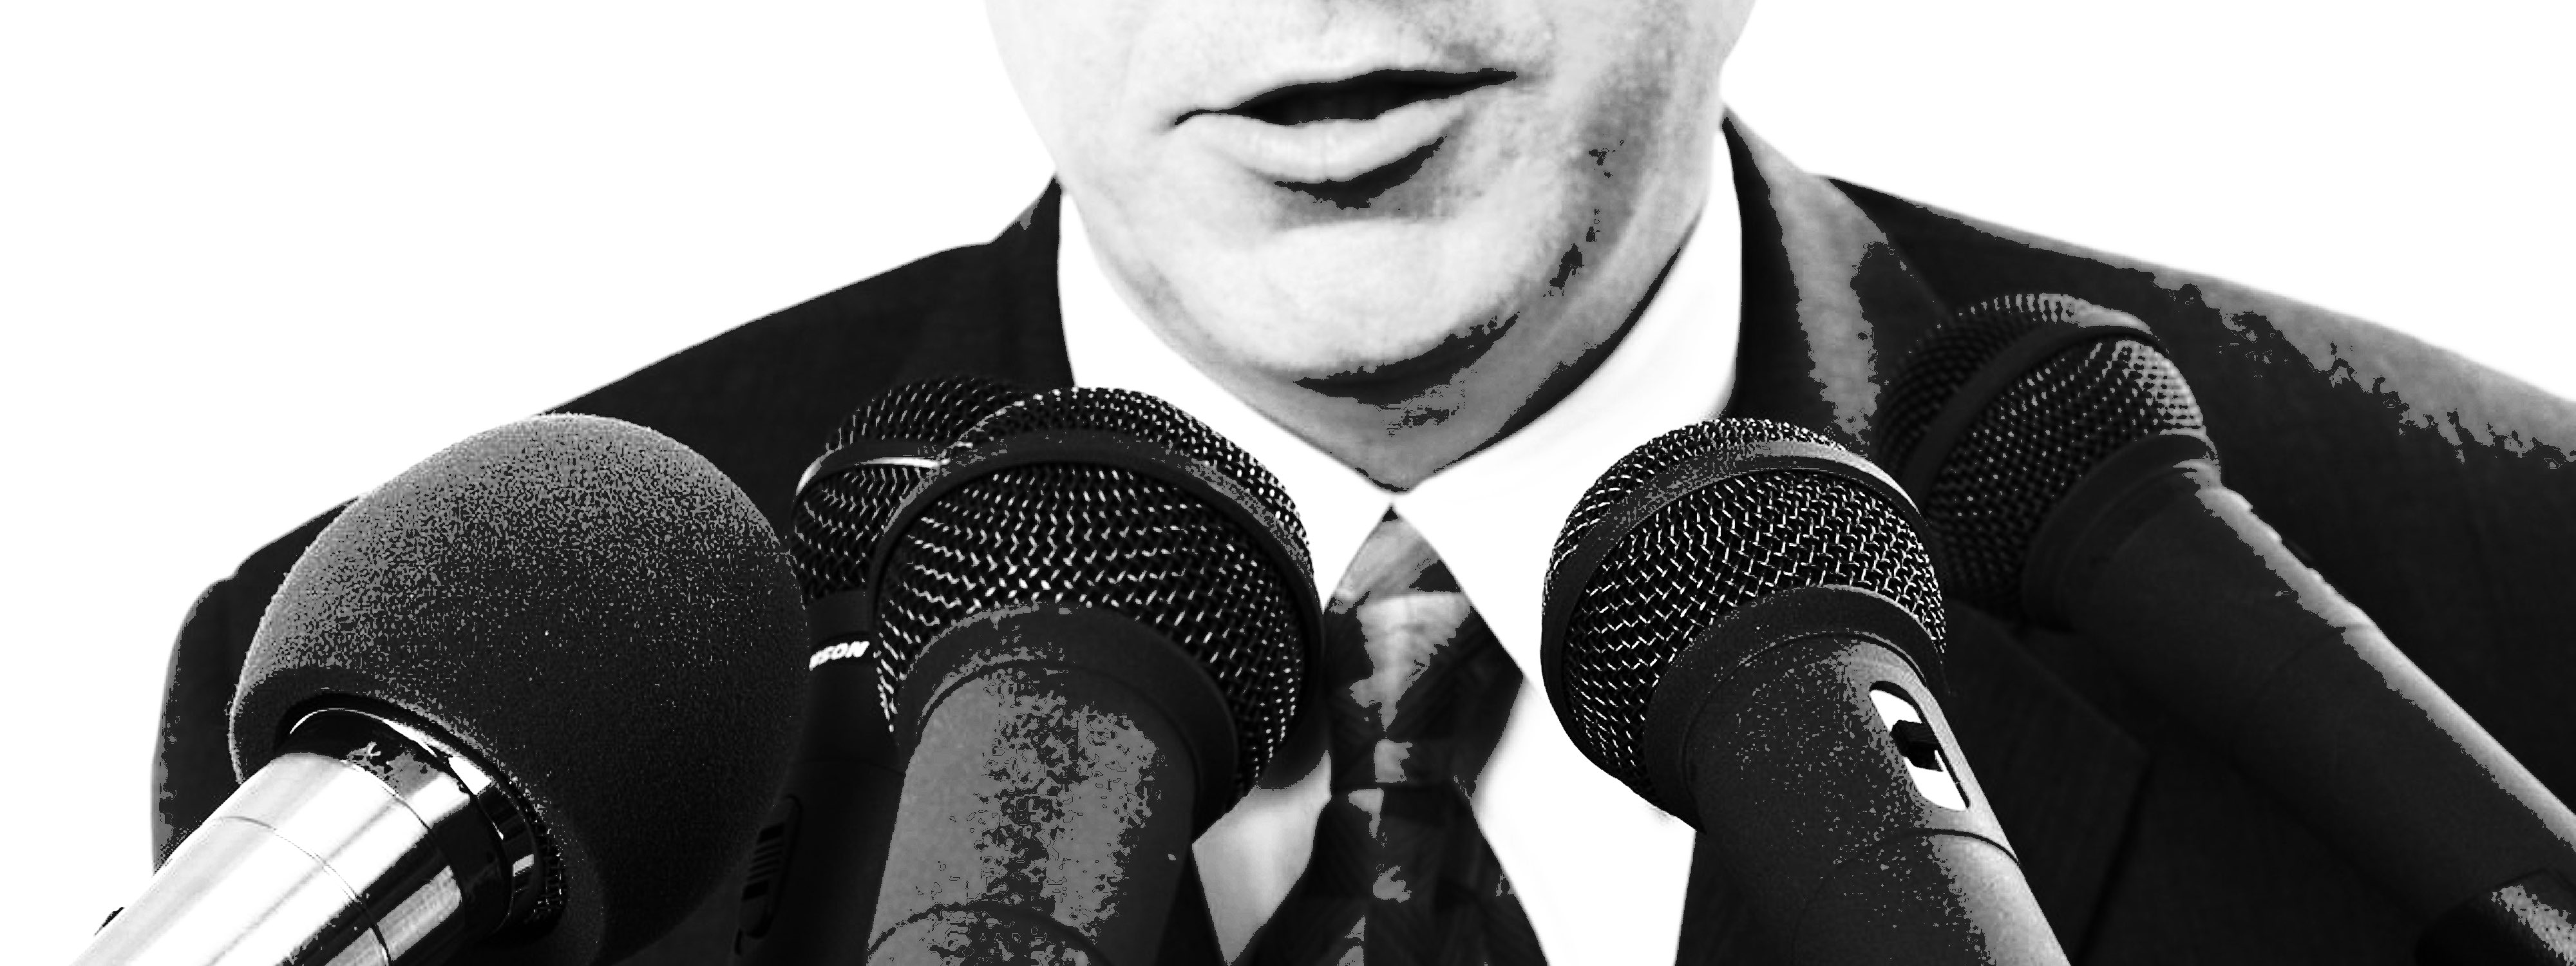 2015-08-26_speaker with a lot of microphones_mikrofon_interview_politik